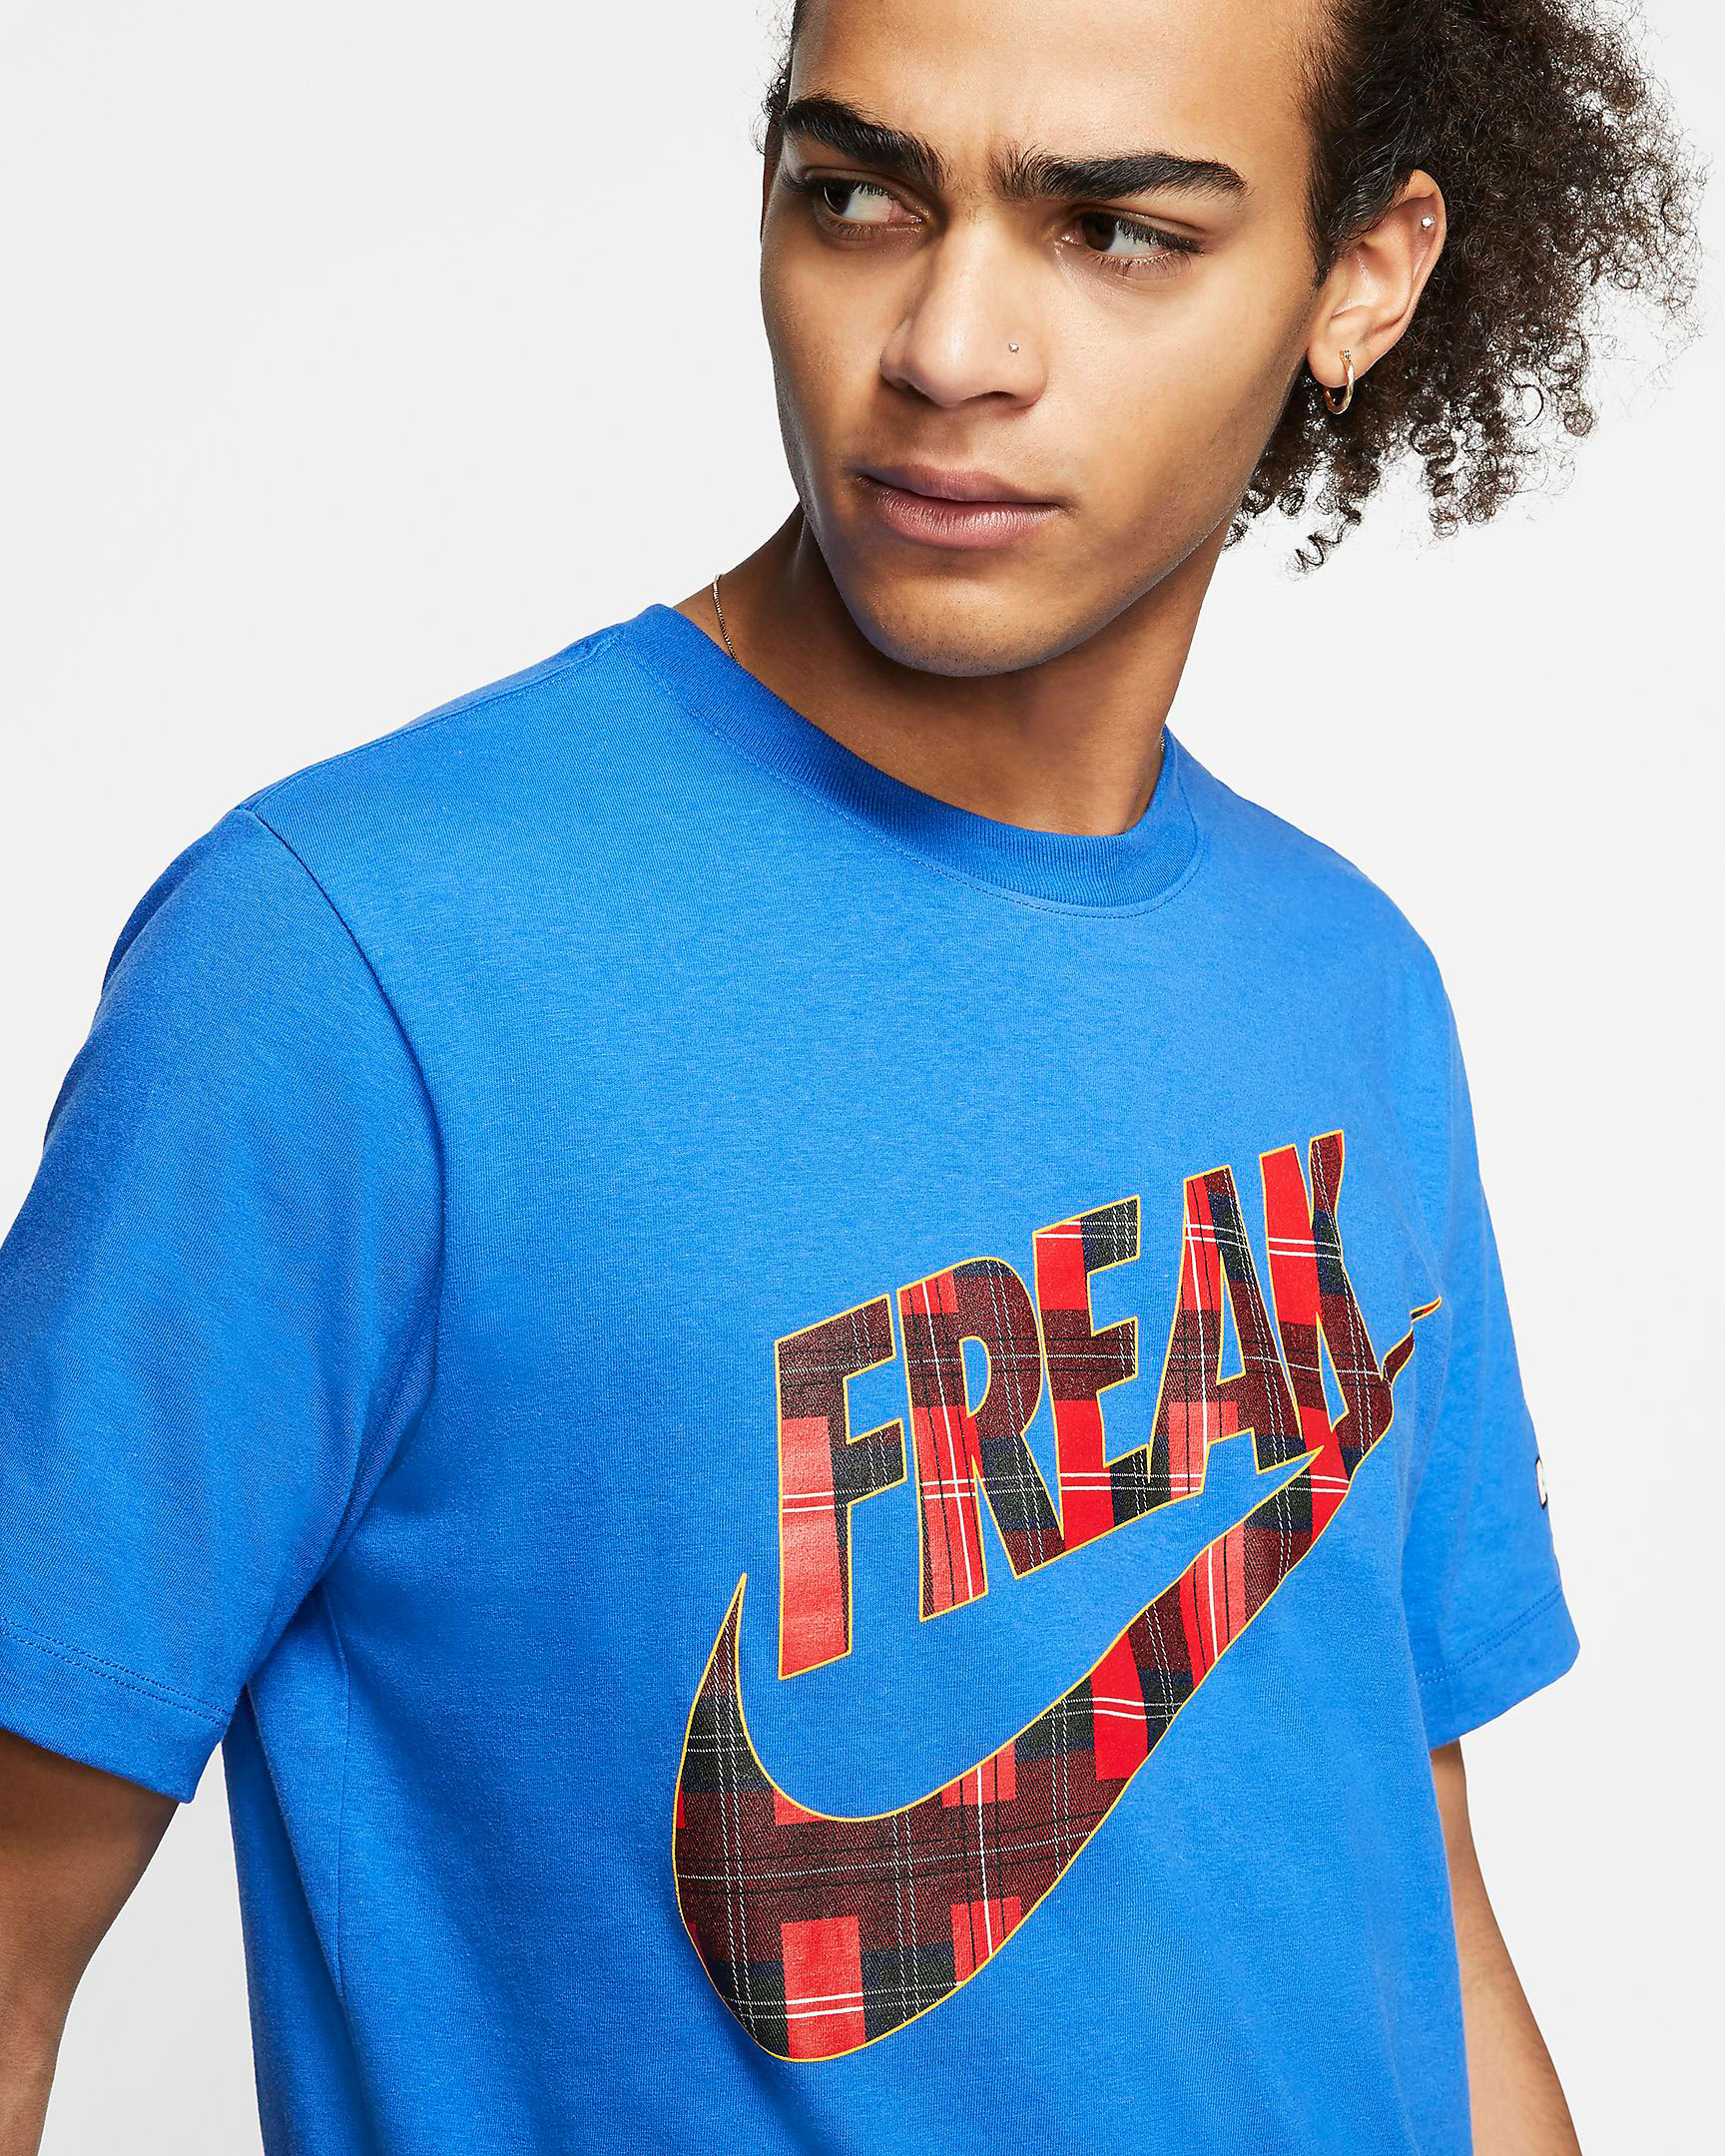 nike-zoom-freak-1-employee-of-the-month-shirt-blue-1